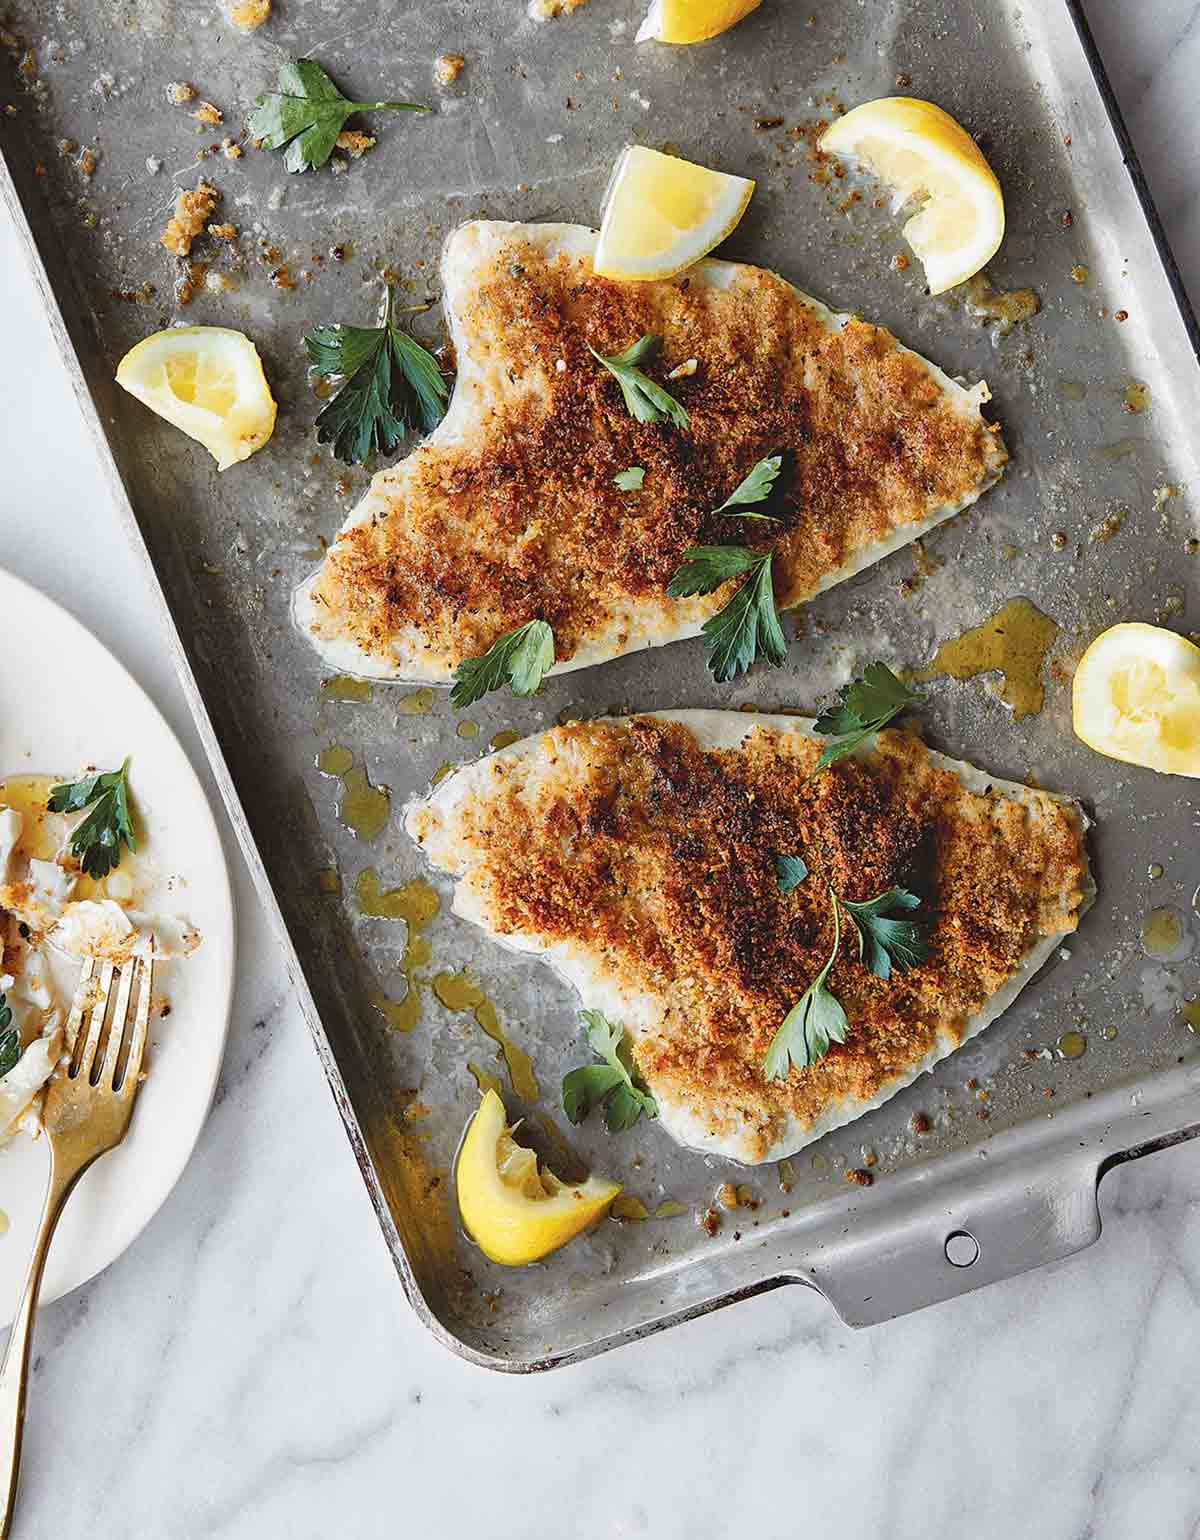 Two fillets of lemon sole oreganata topped with a Parmigiano-Reggiano breadcrumb mixture on a baking sheet